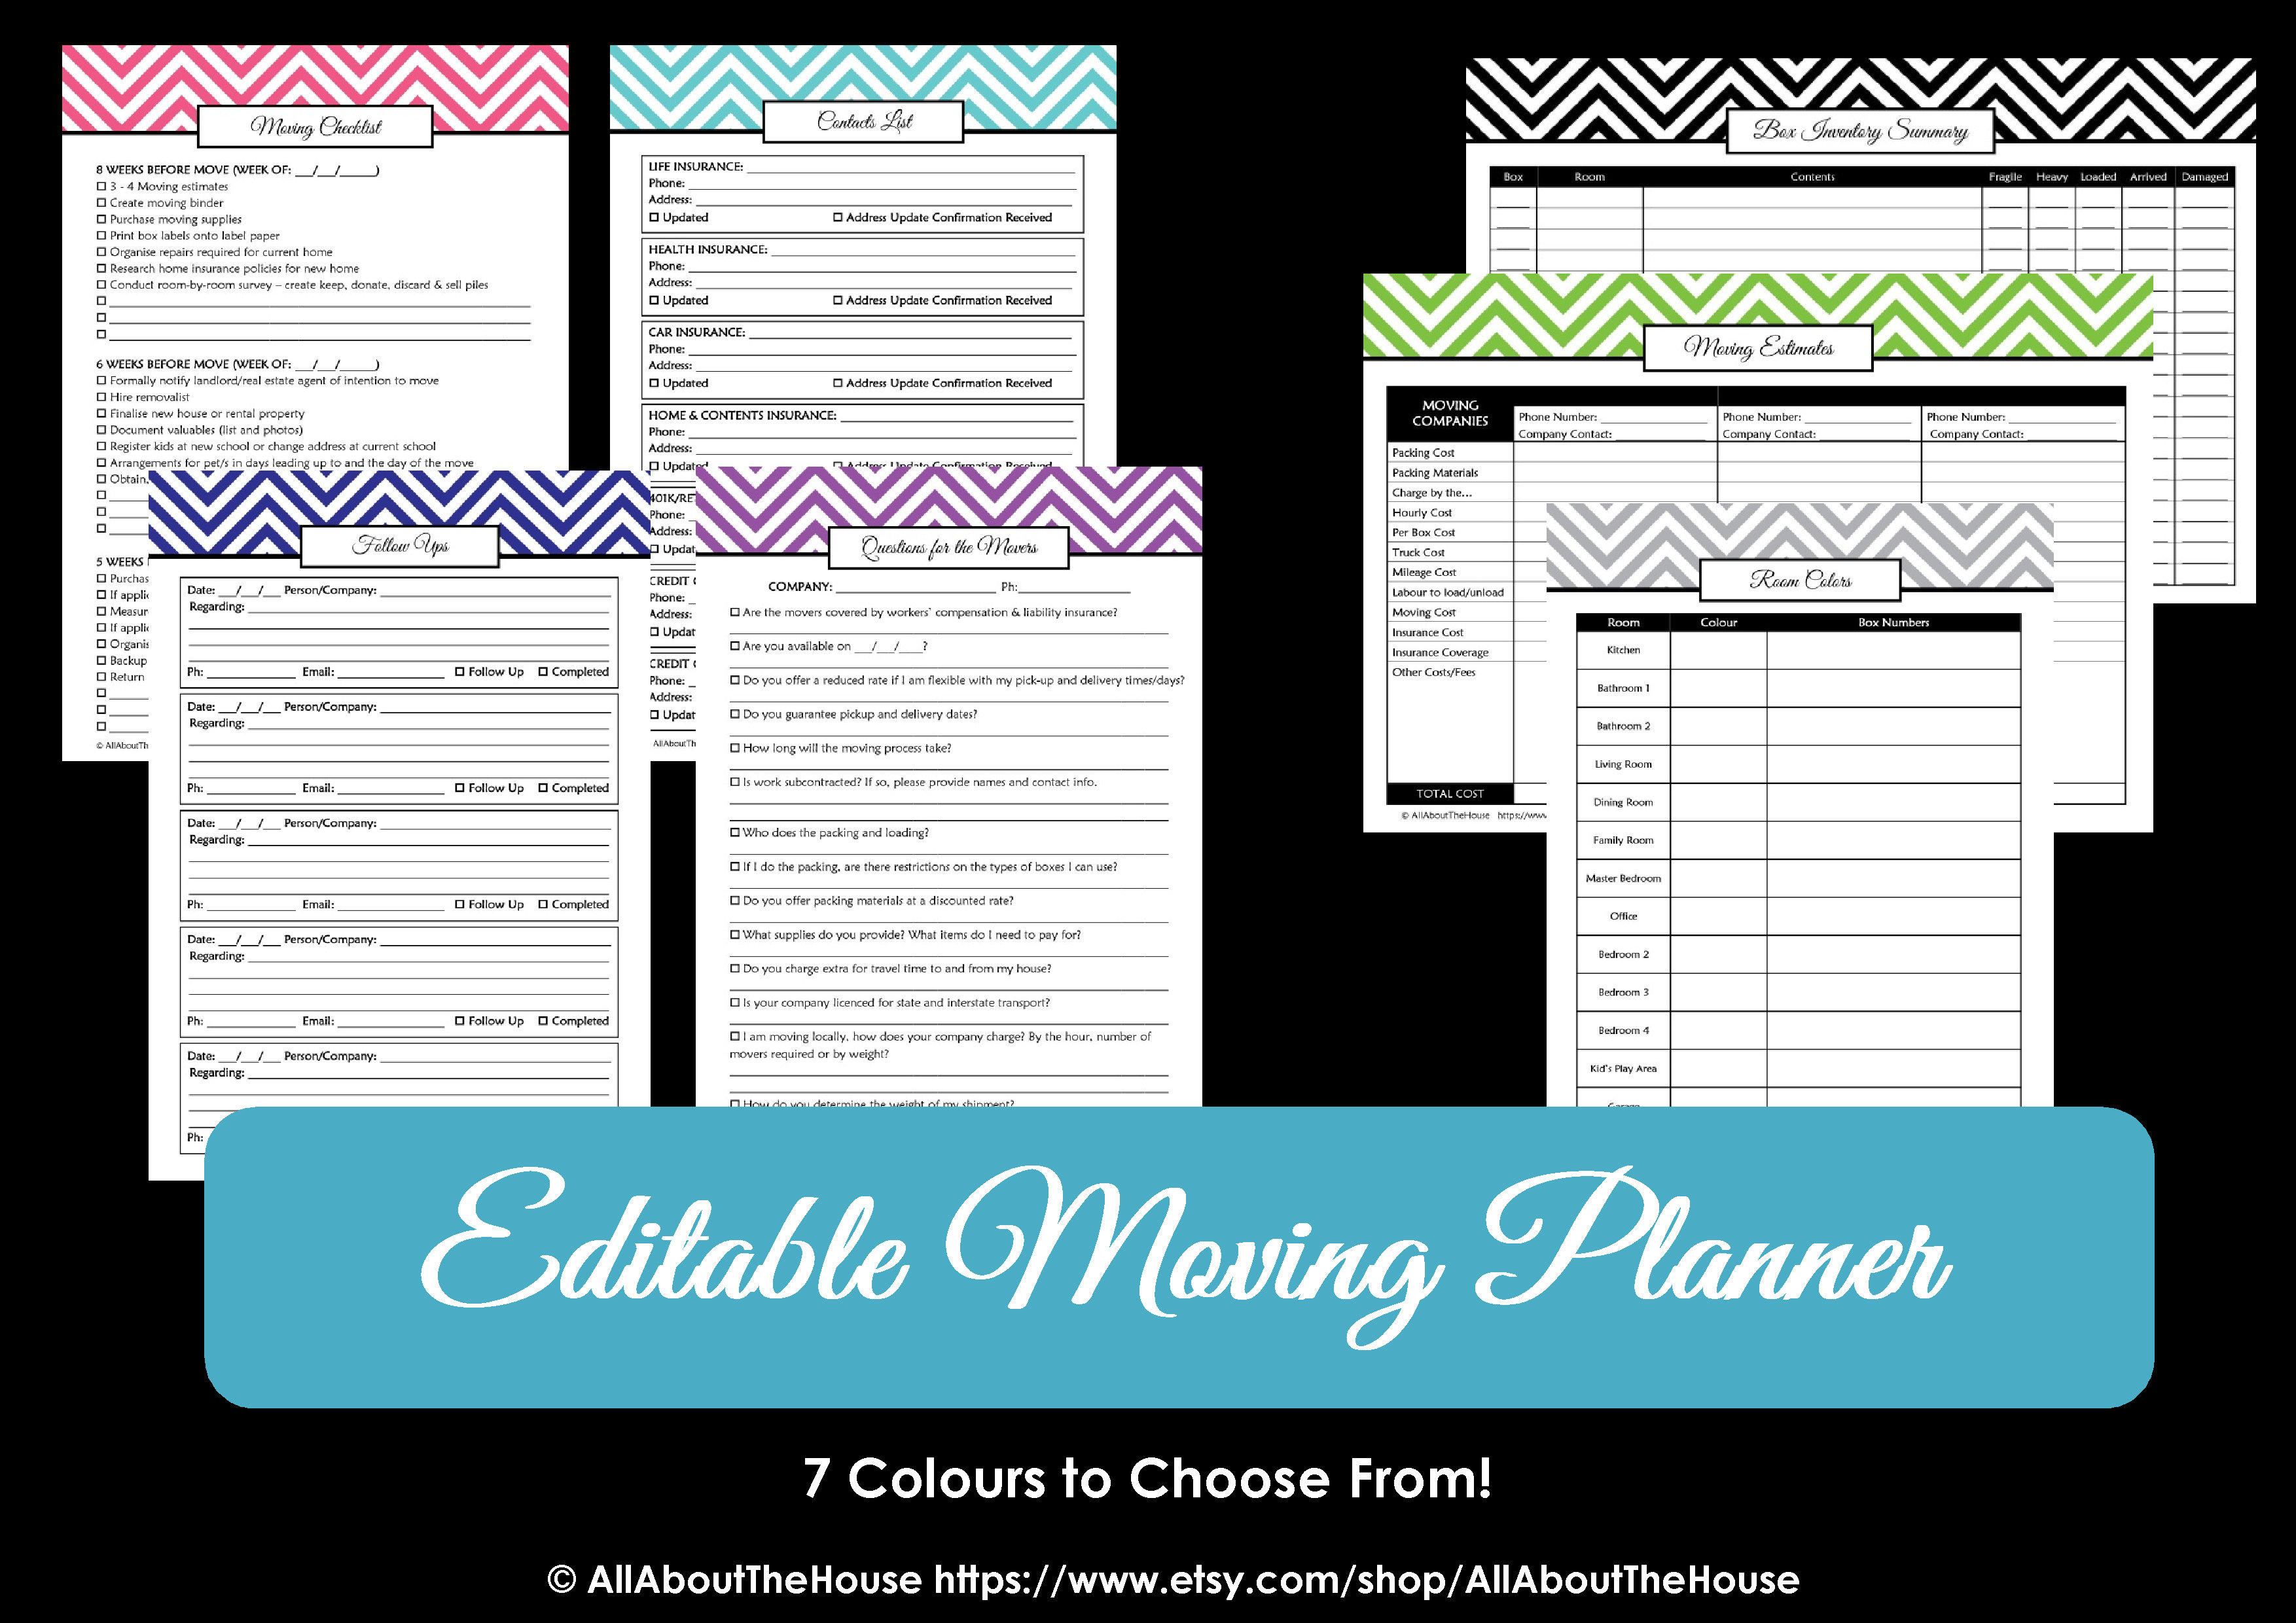 Moving Planner Listing Image(1)